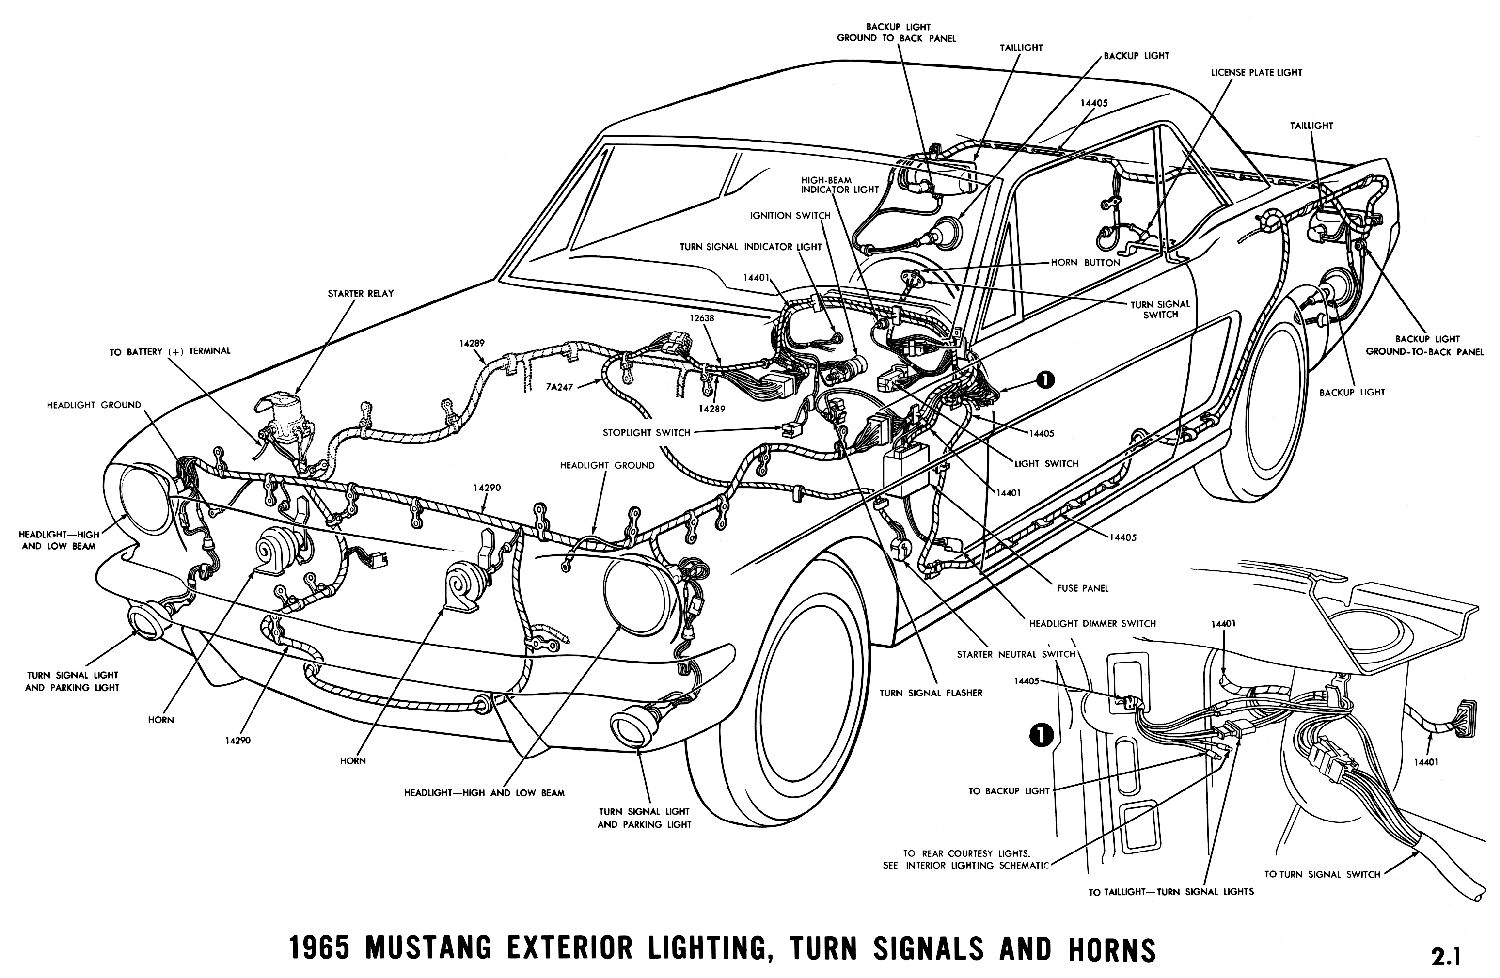 1965d 1965 mustang wiring diagrams average joe restoration 1965 ford mustang wiring diagram at crackthecode.co